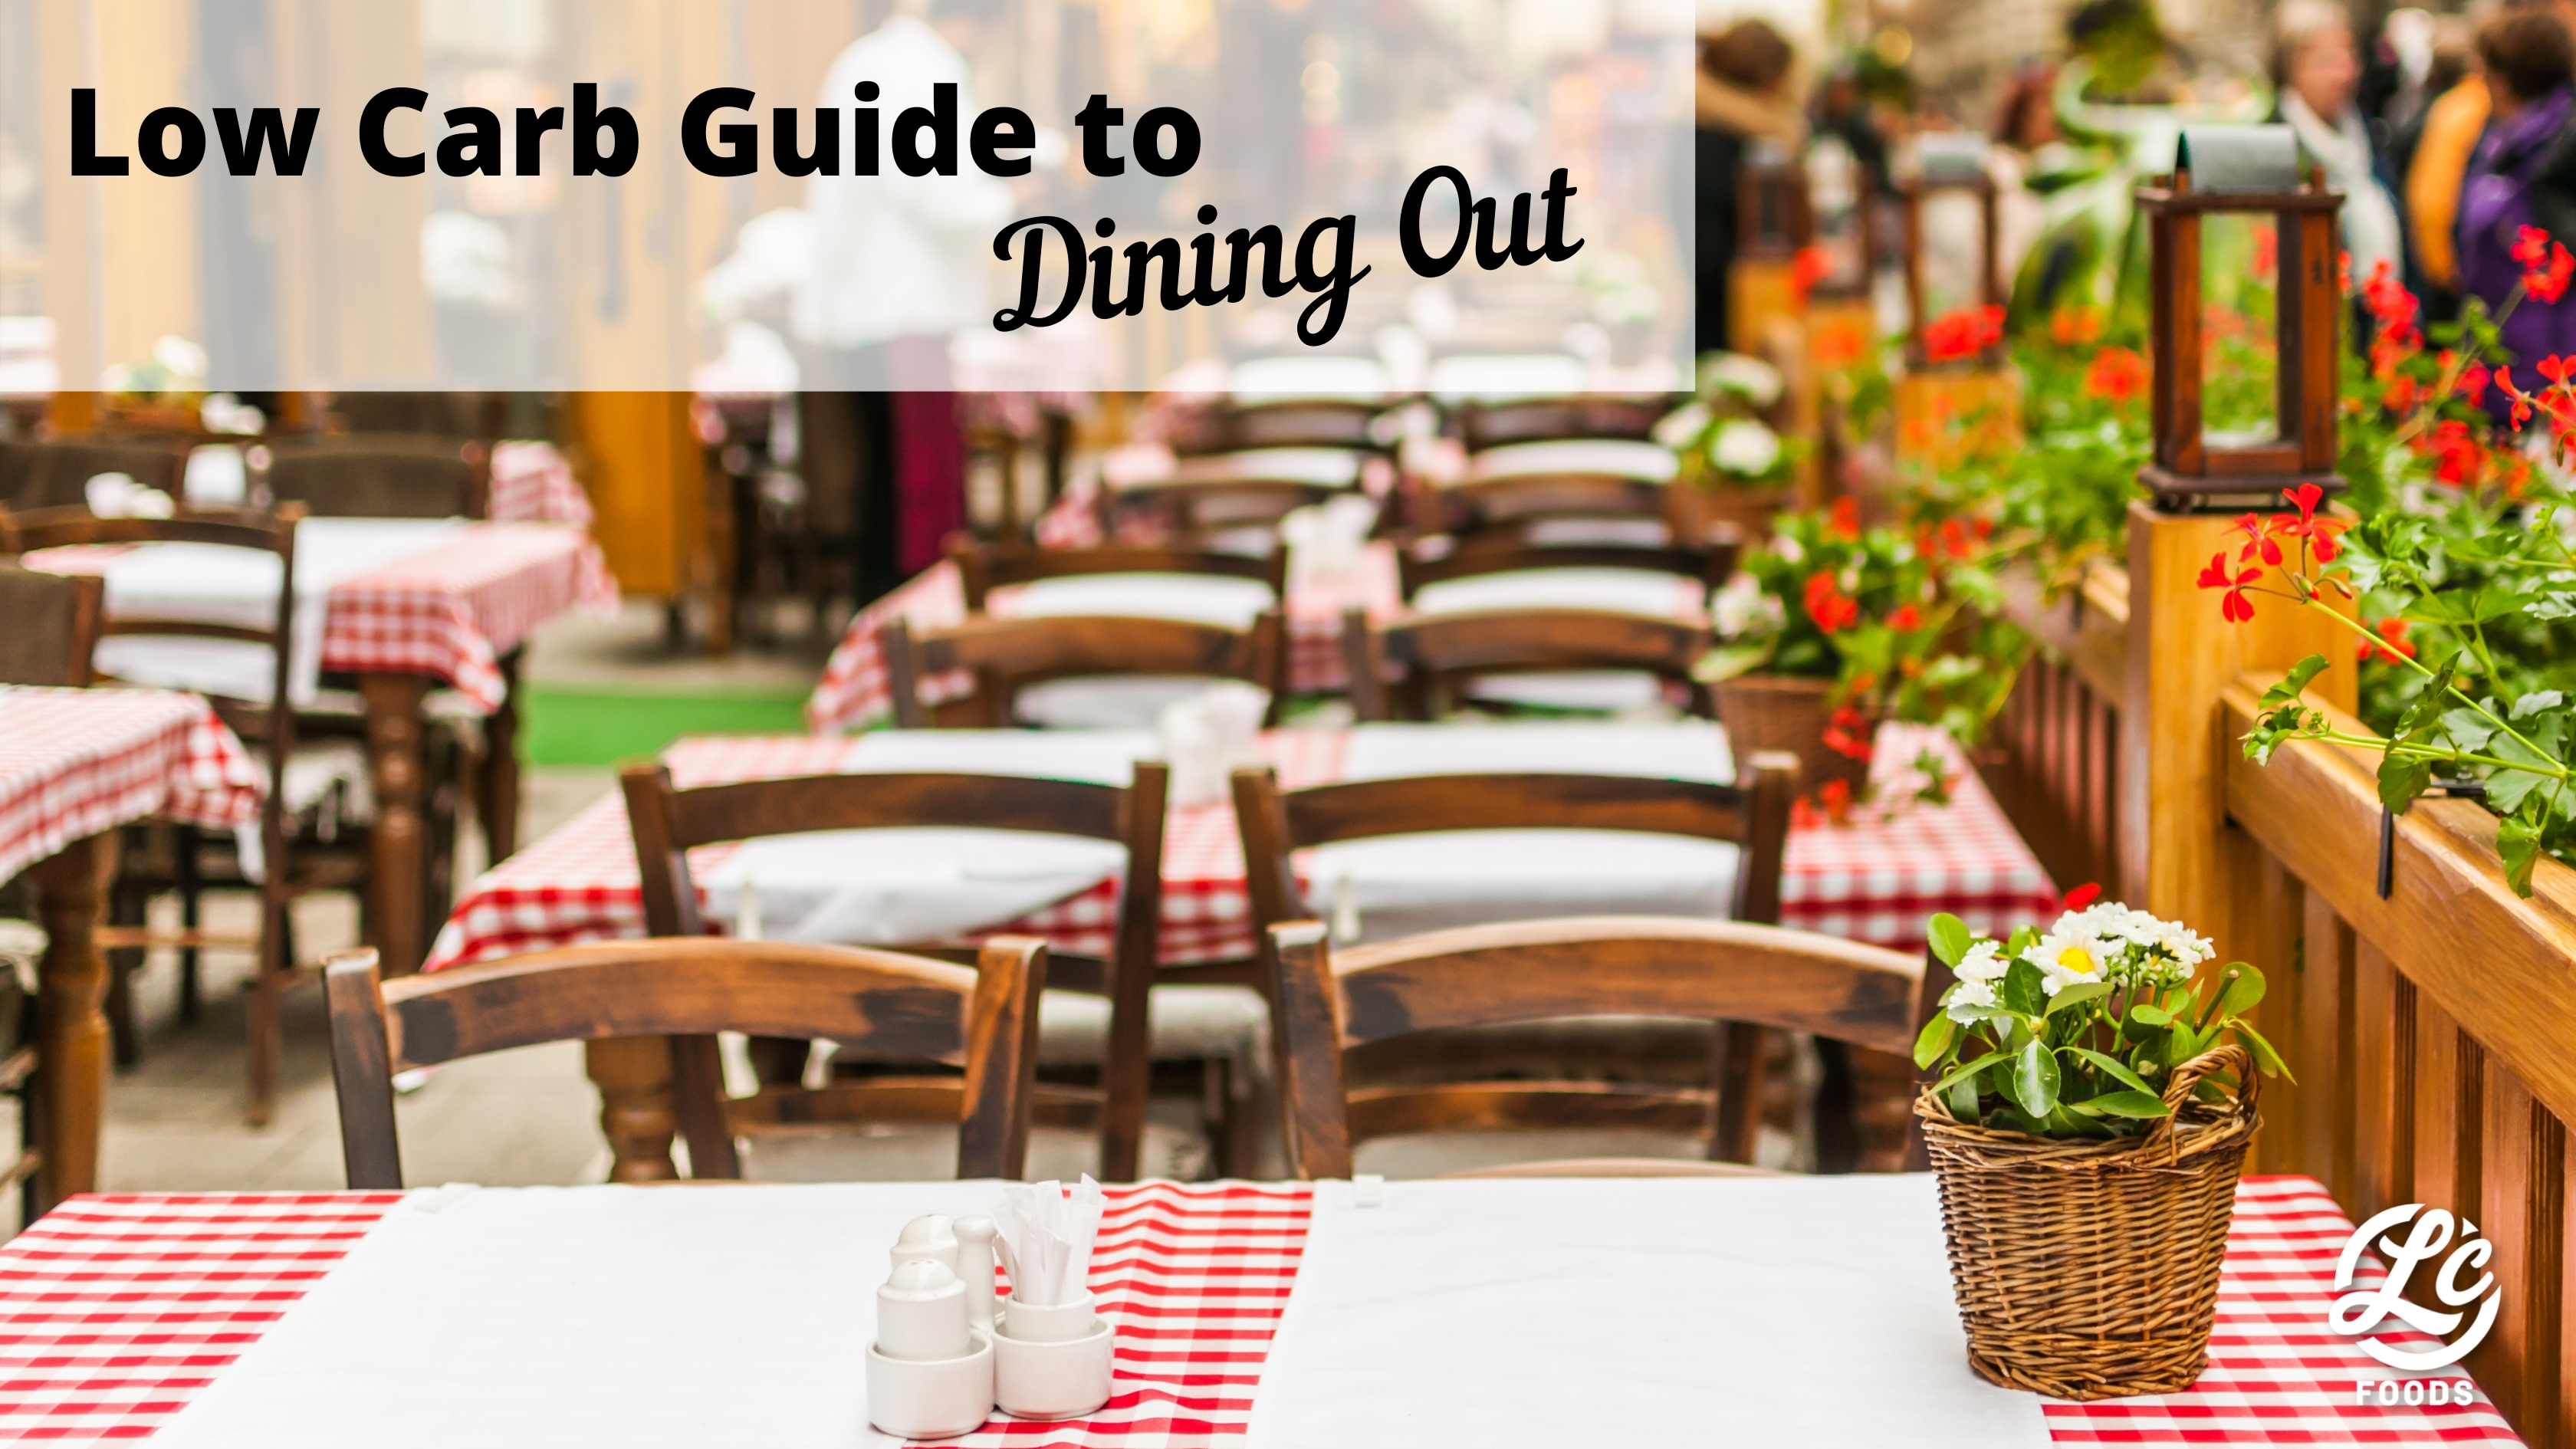 Thumbnail for Low Carb Guide to Dining Out